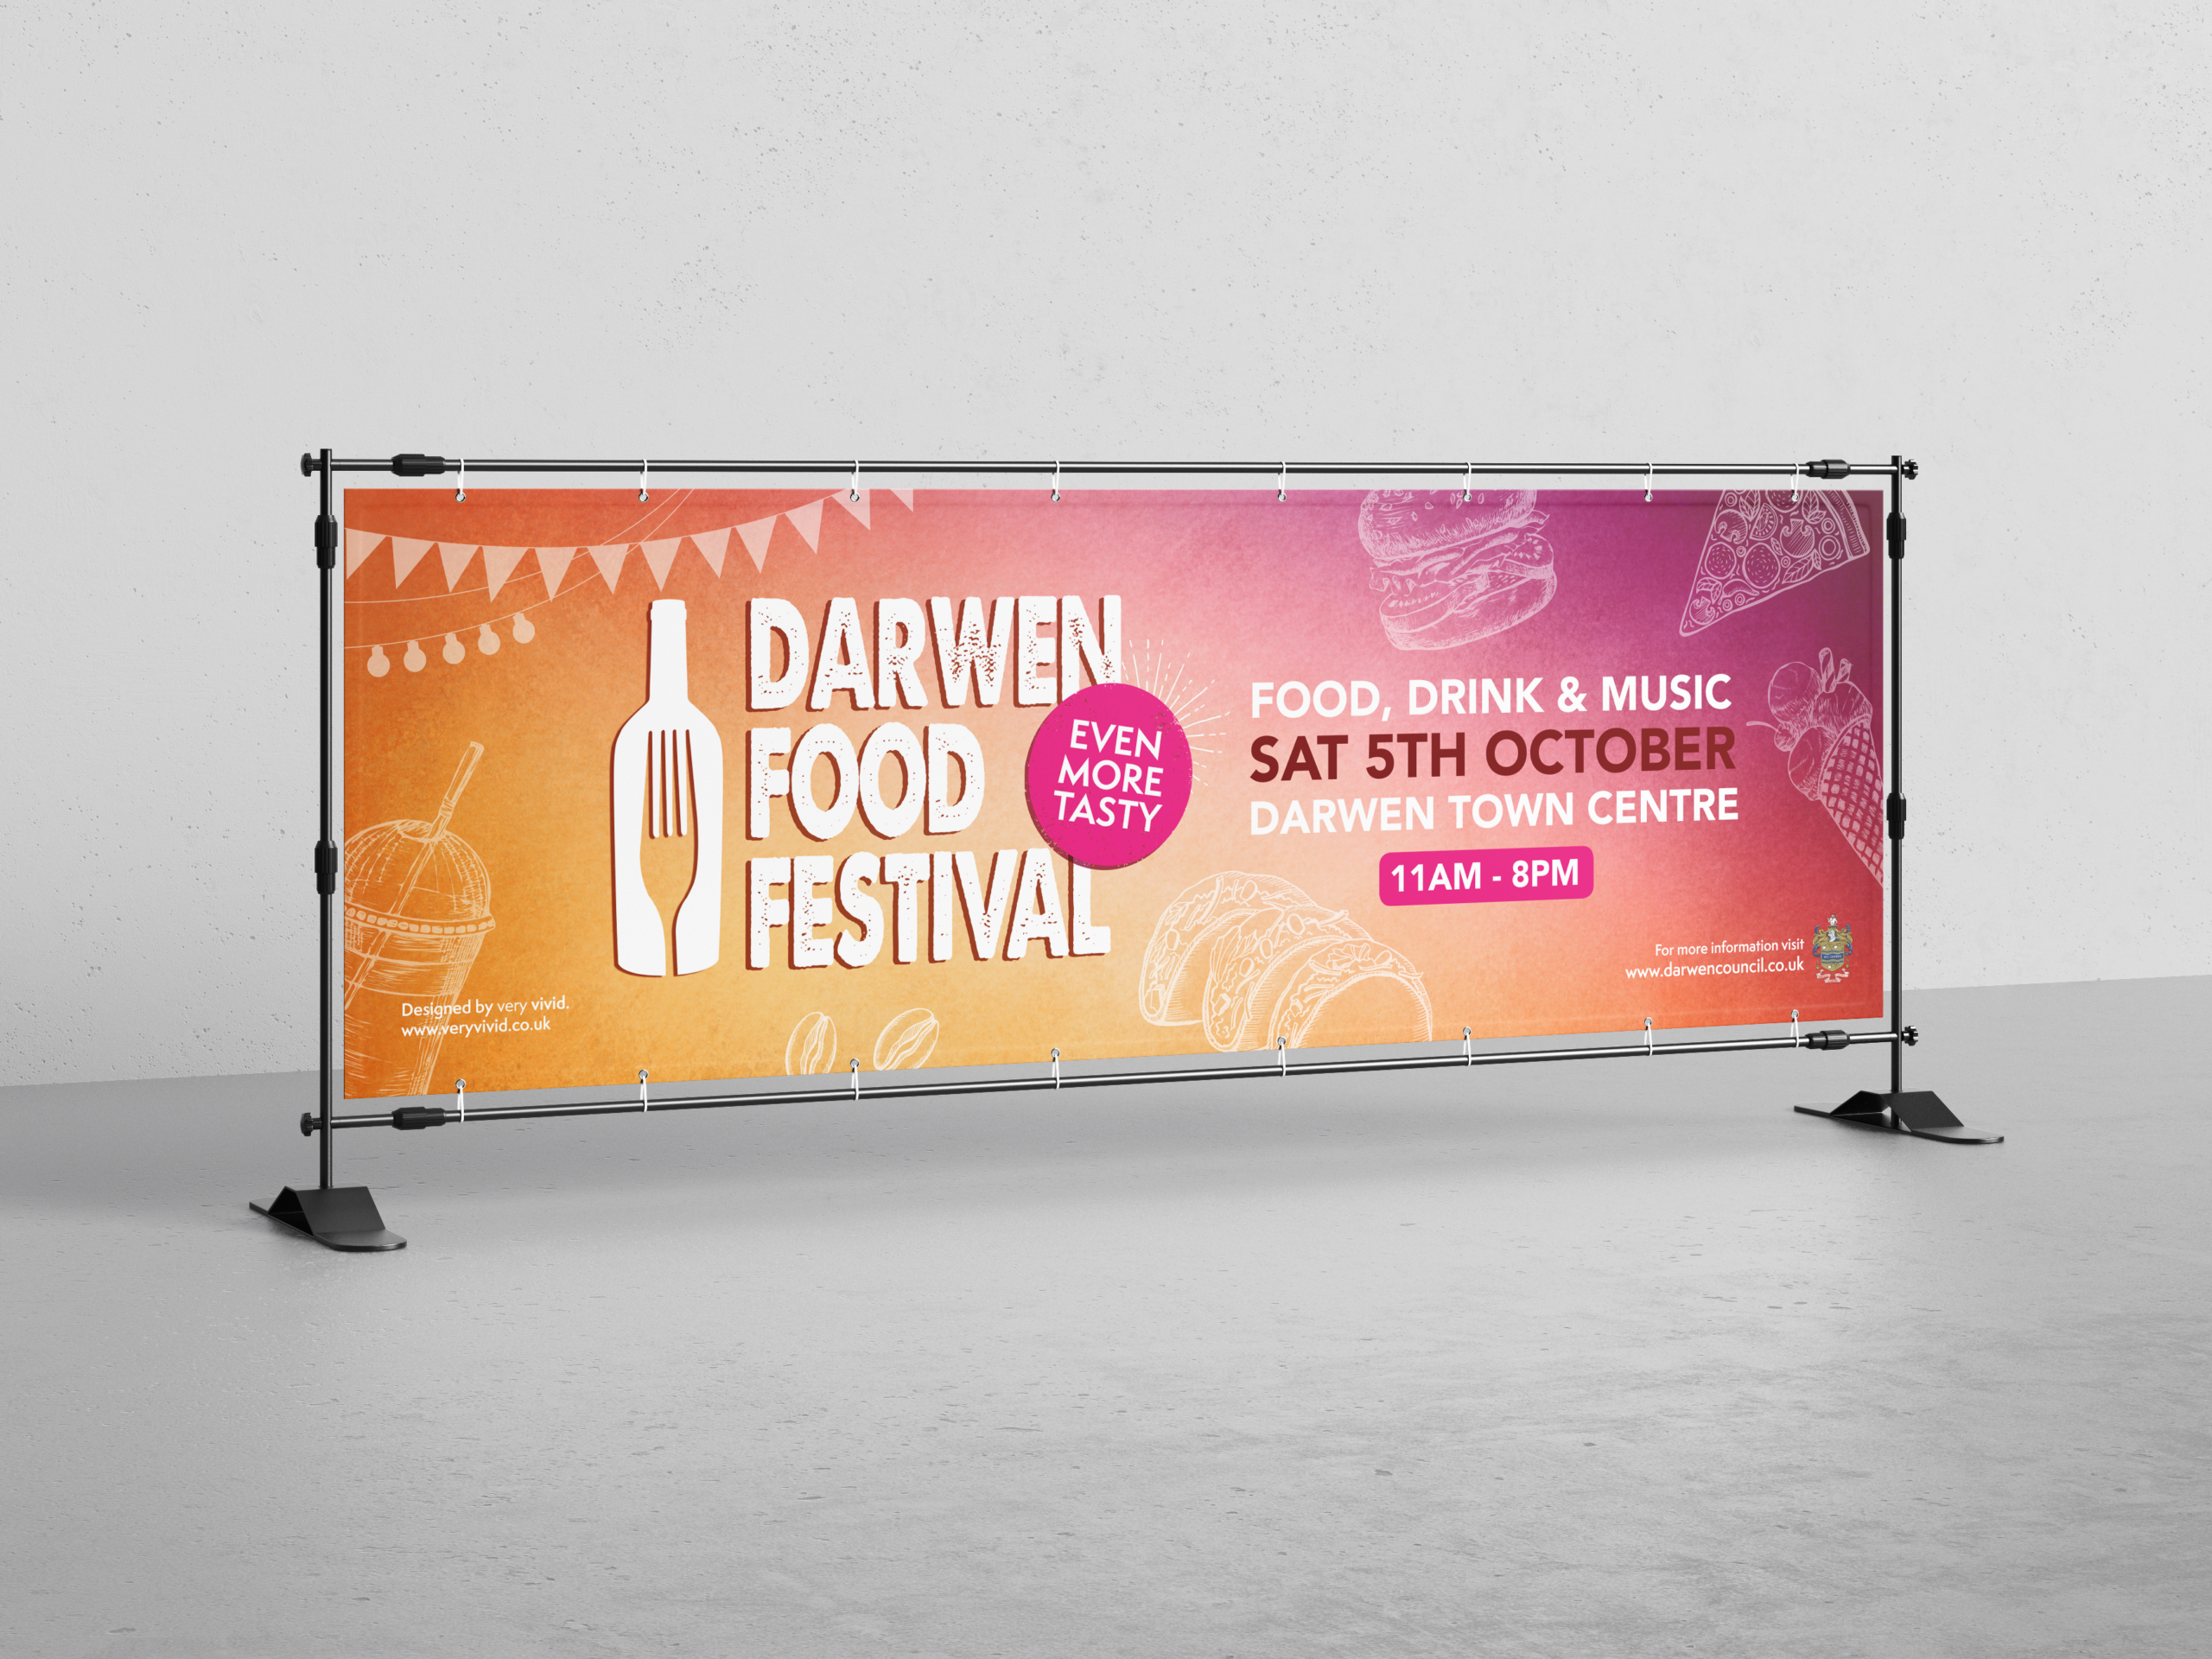 Darwen Food Festival 2019 Artwork Design by Very Vivid Graphic Designer Blackburn